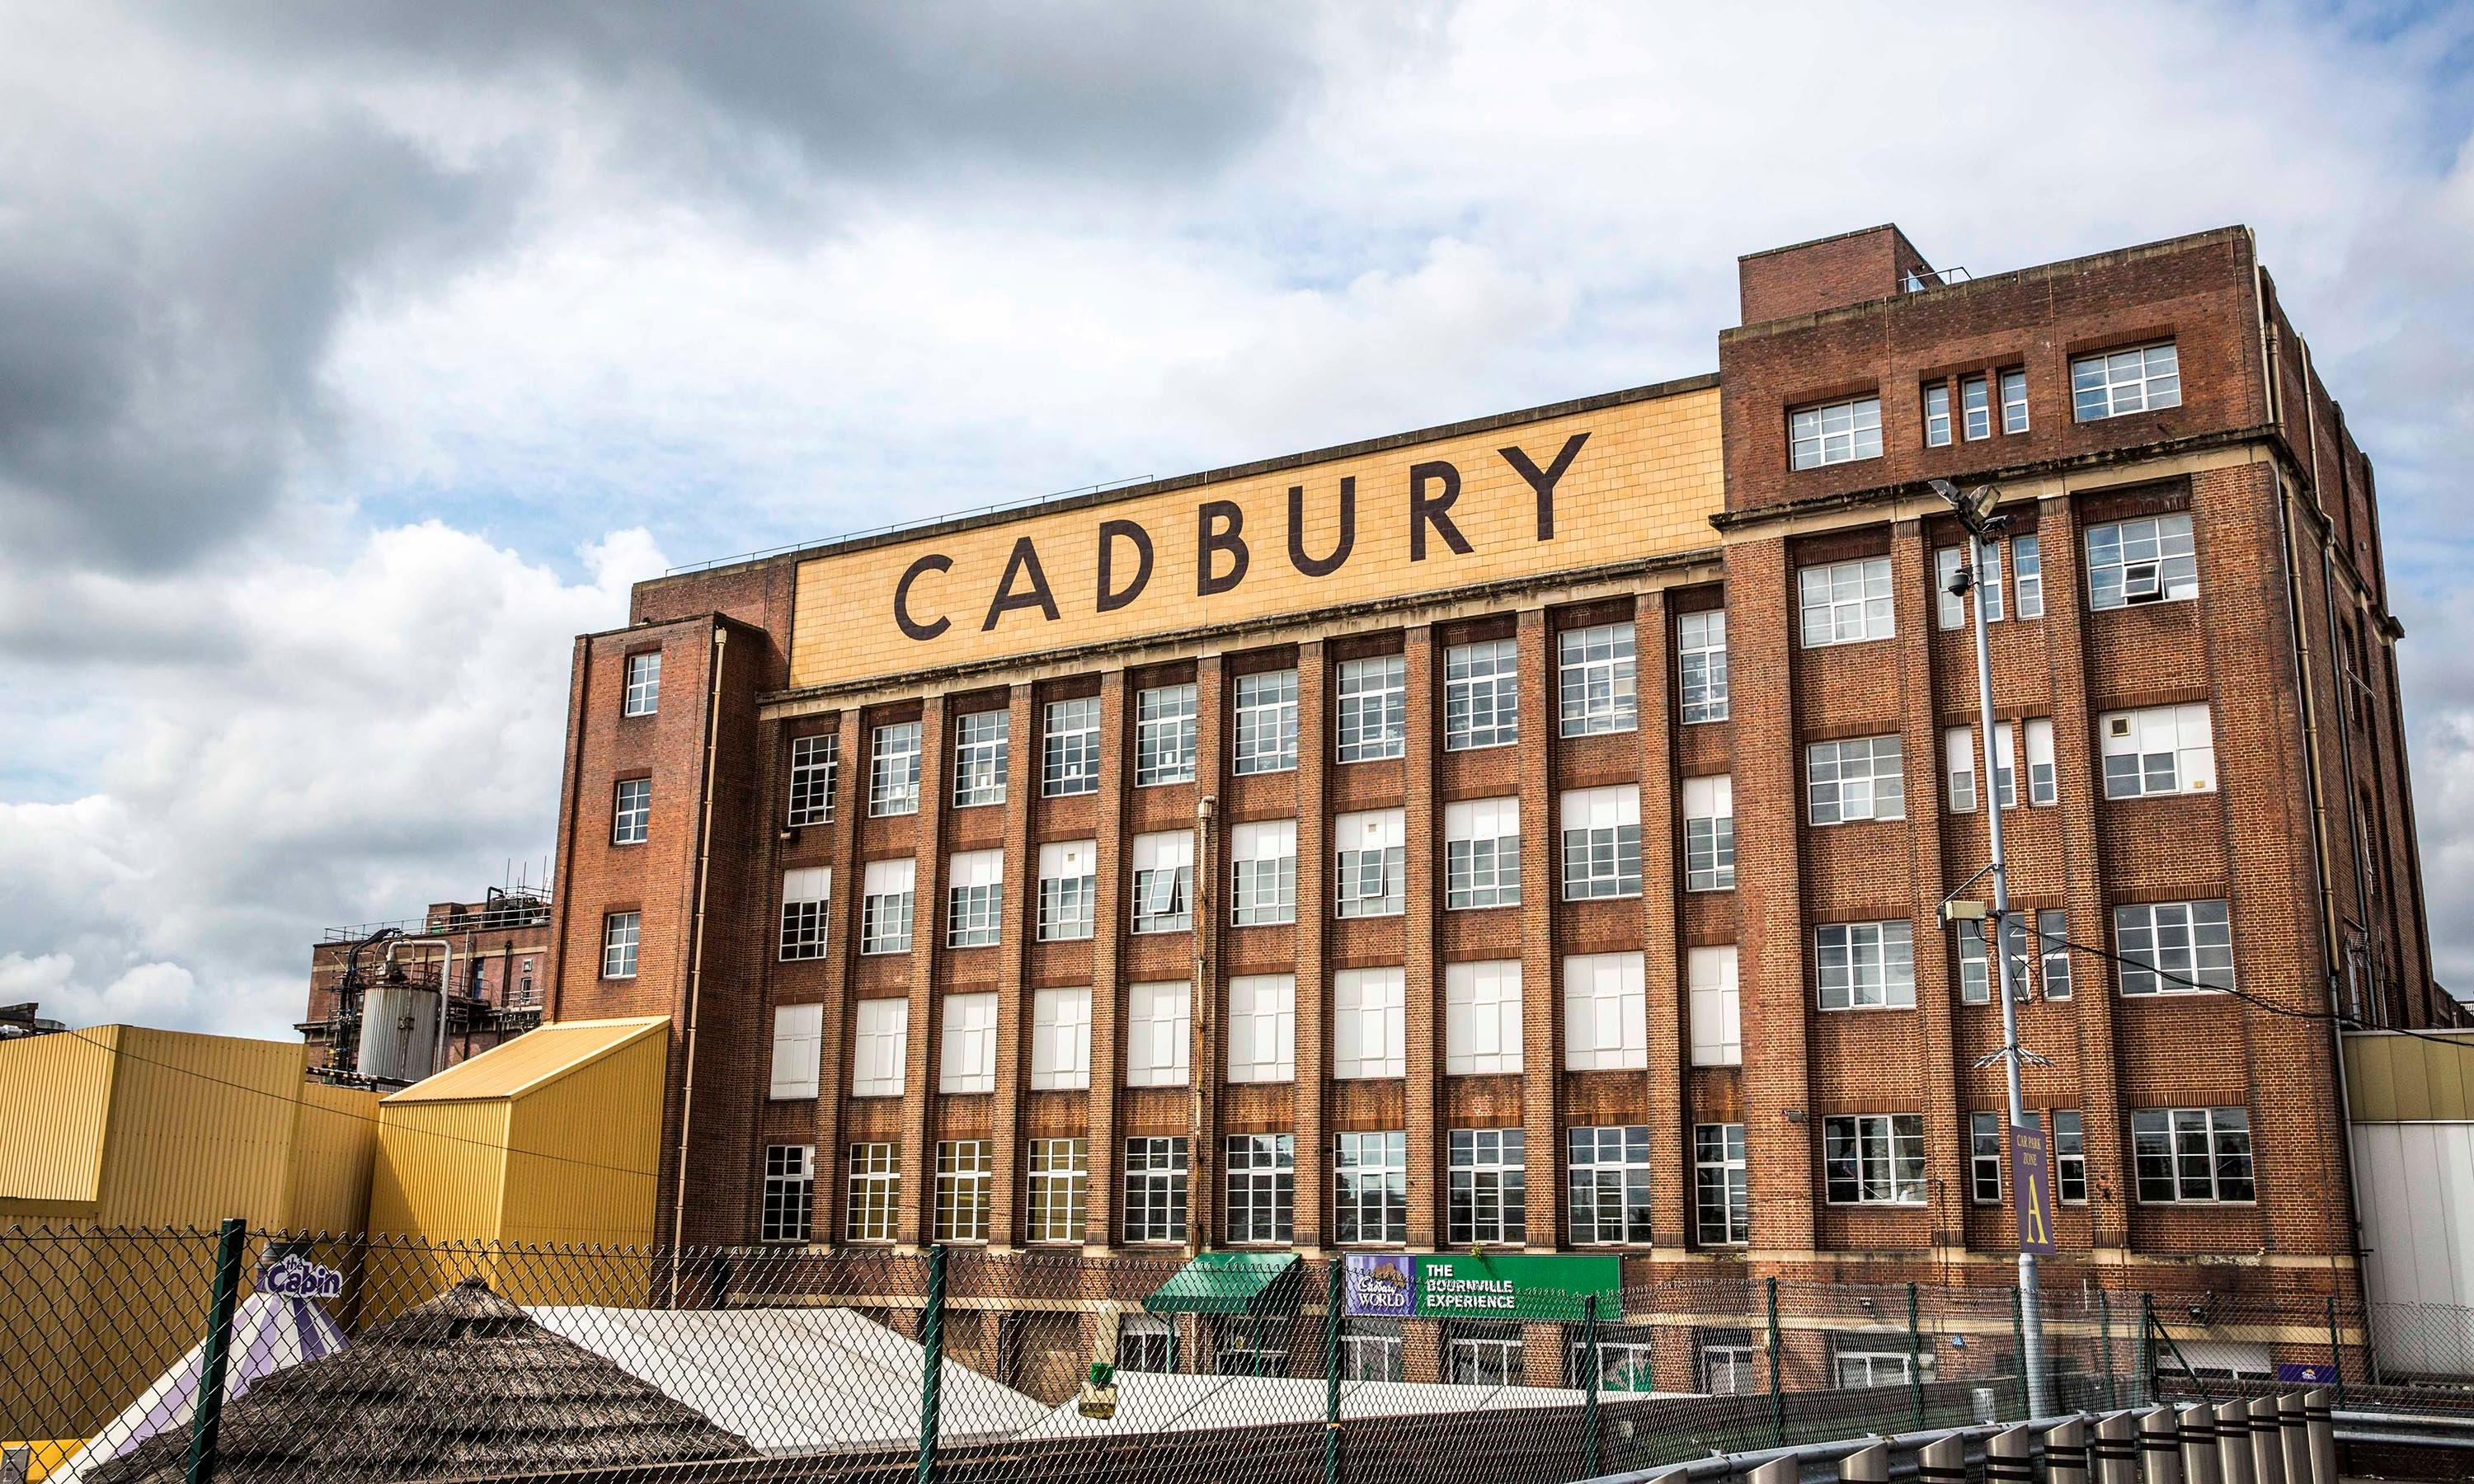 TV tonight: sweet secrets revealed Inside Cadbury